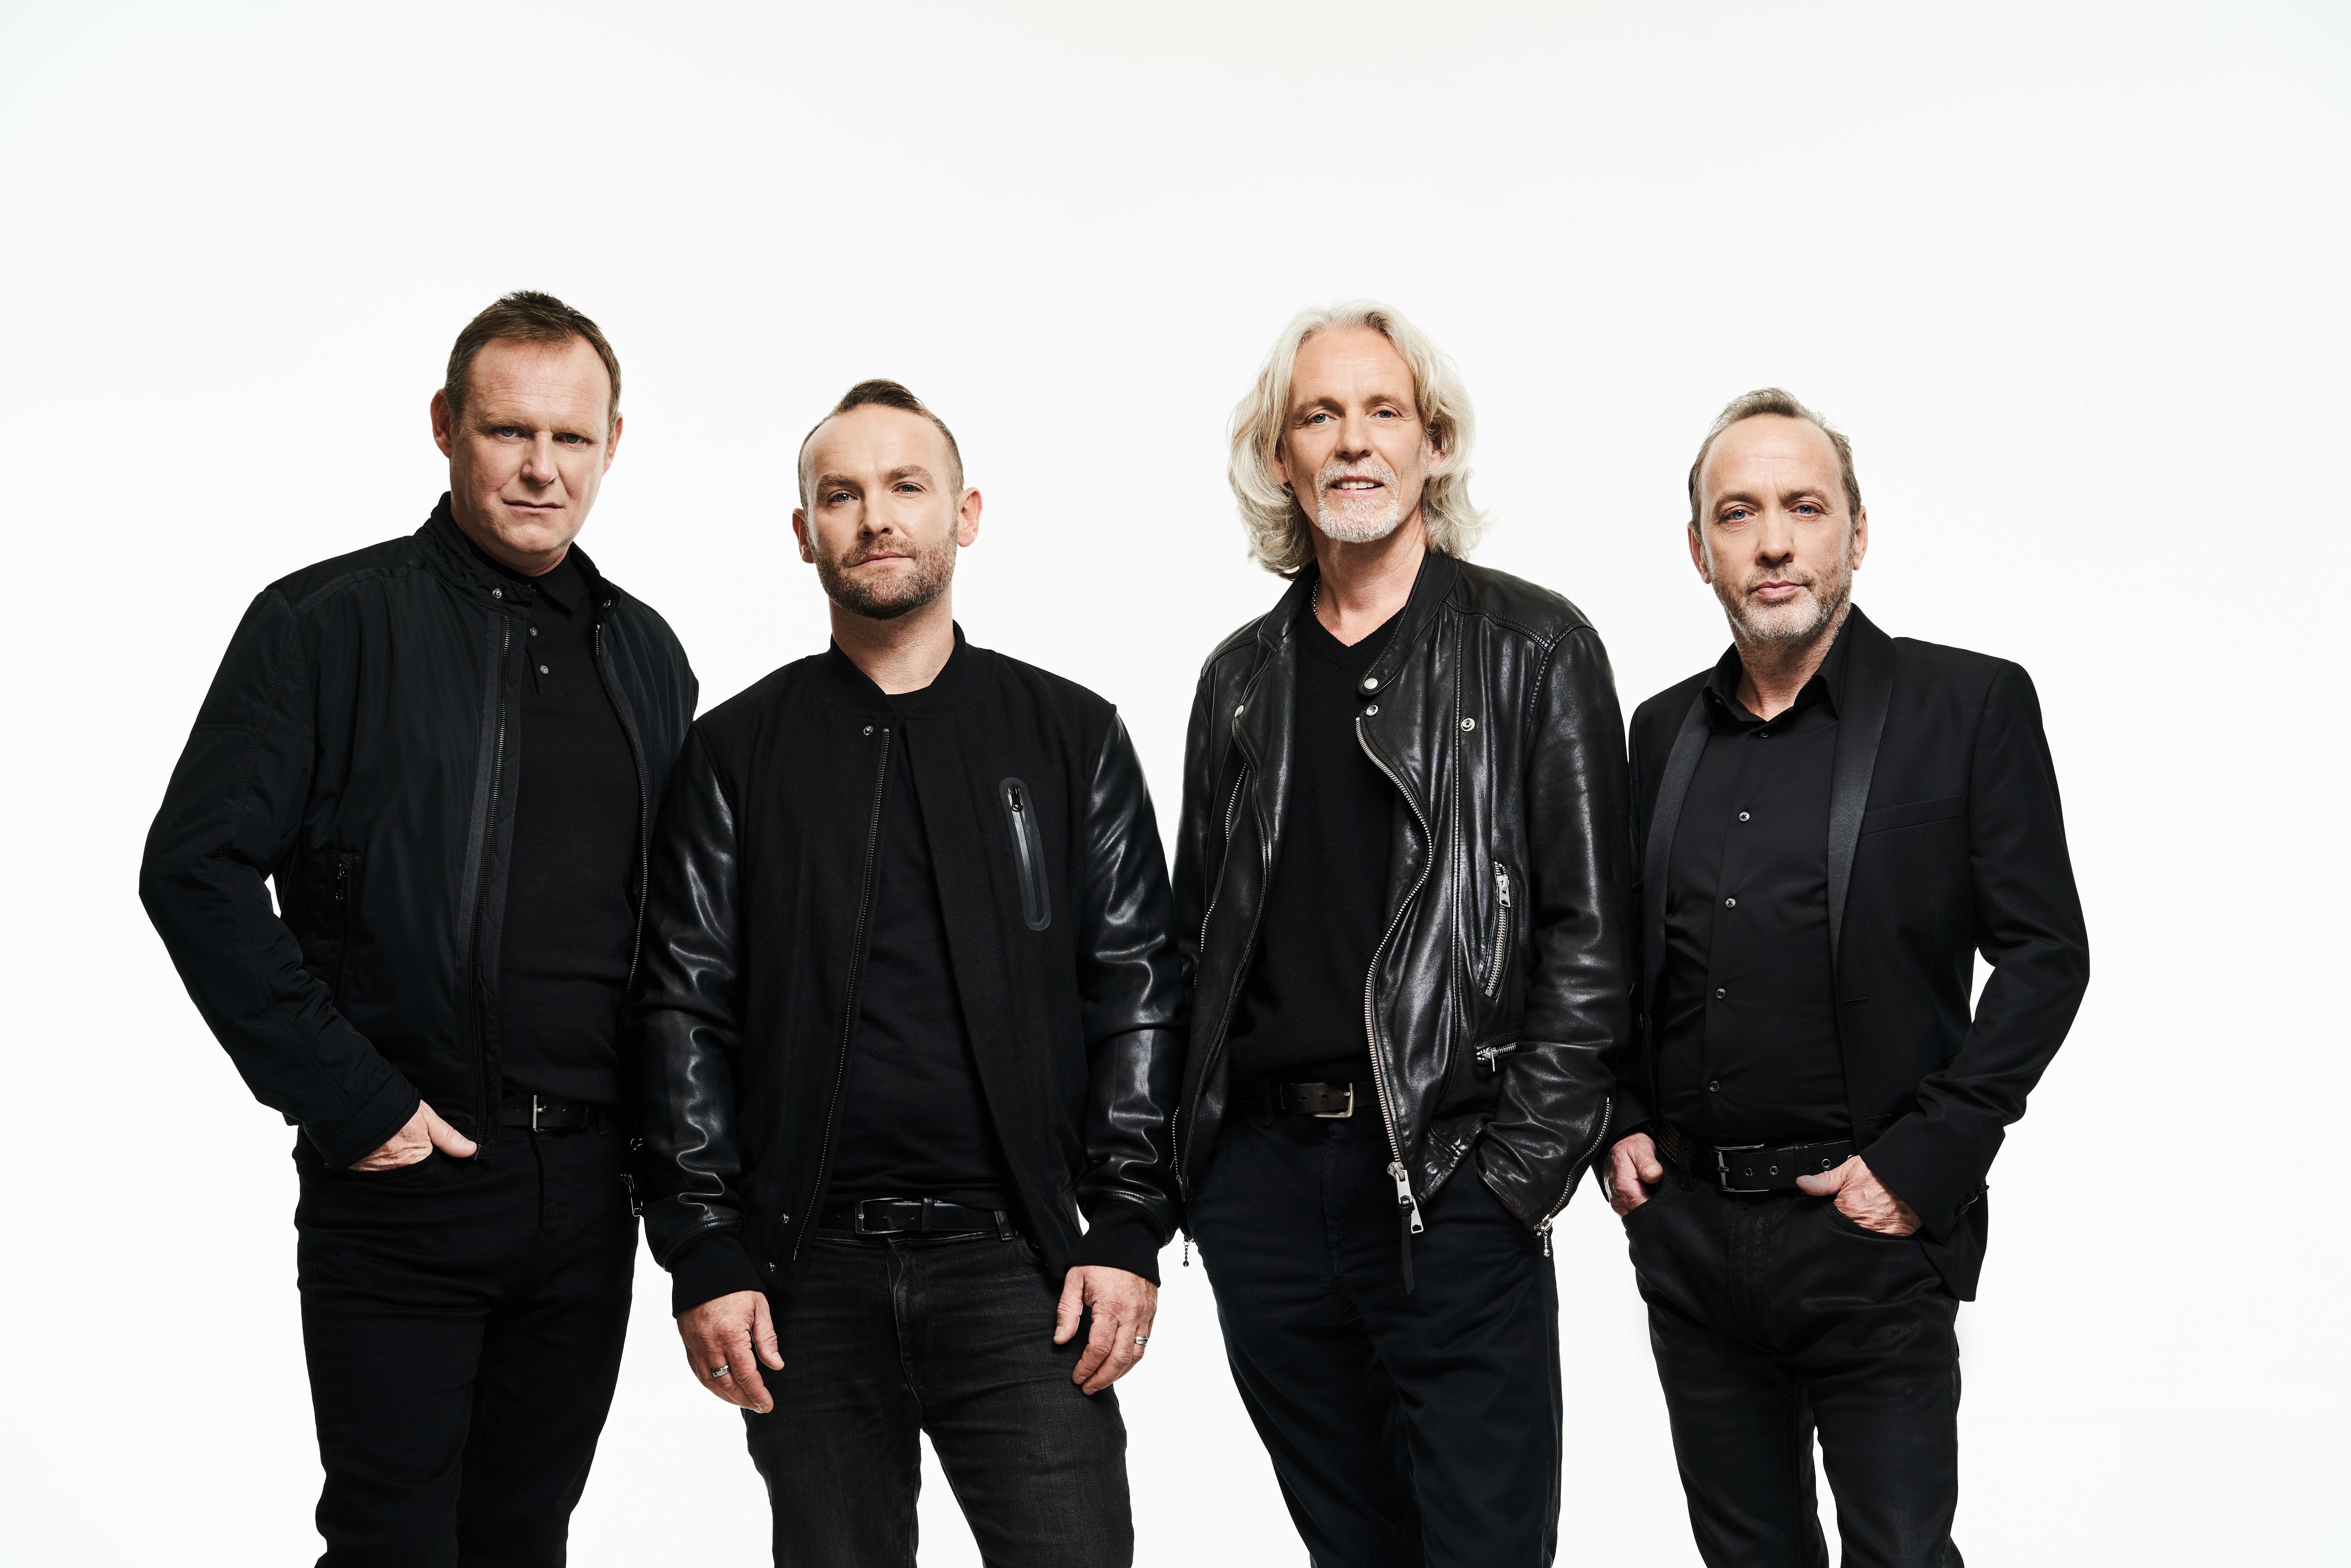 Wet Wet Wet will join KT Tunstall, Deacon Blue and Midge Ure amongst many others at the 2019 Party at the Palace festival in Linlithgow.